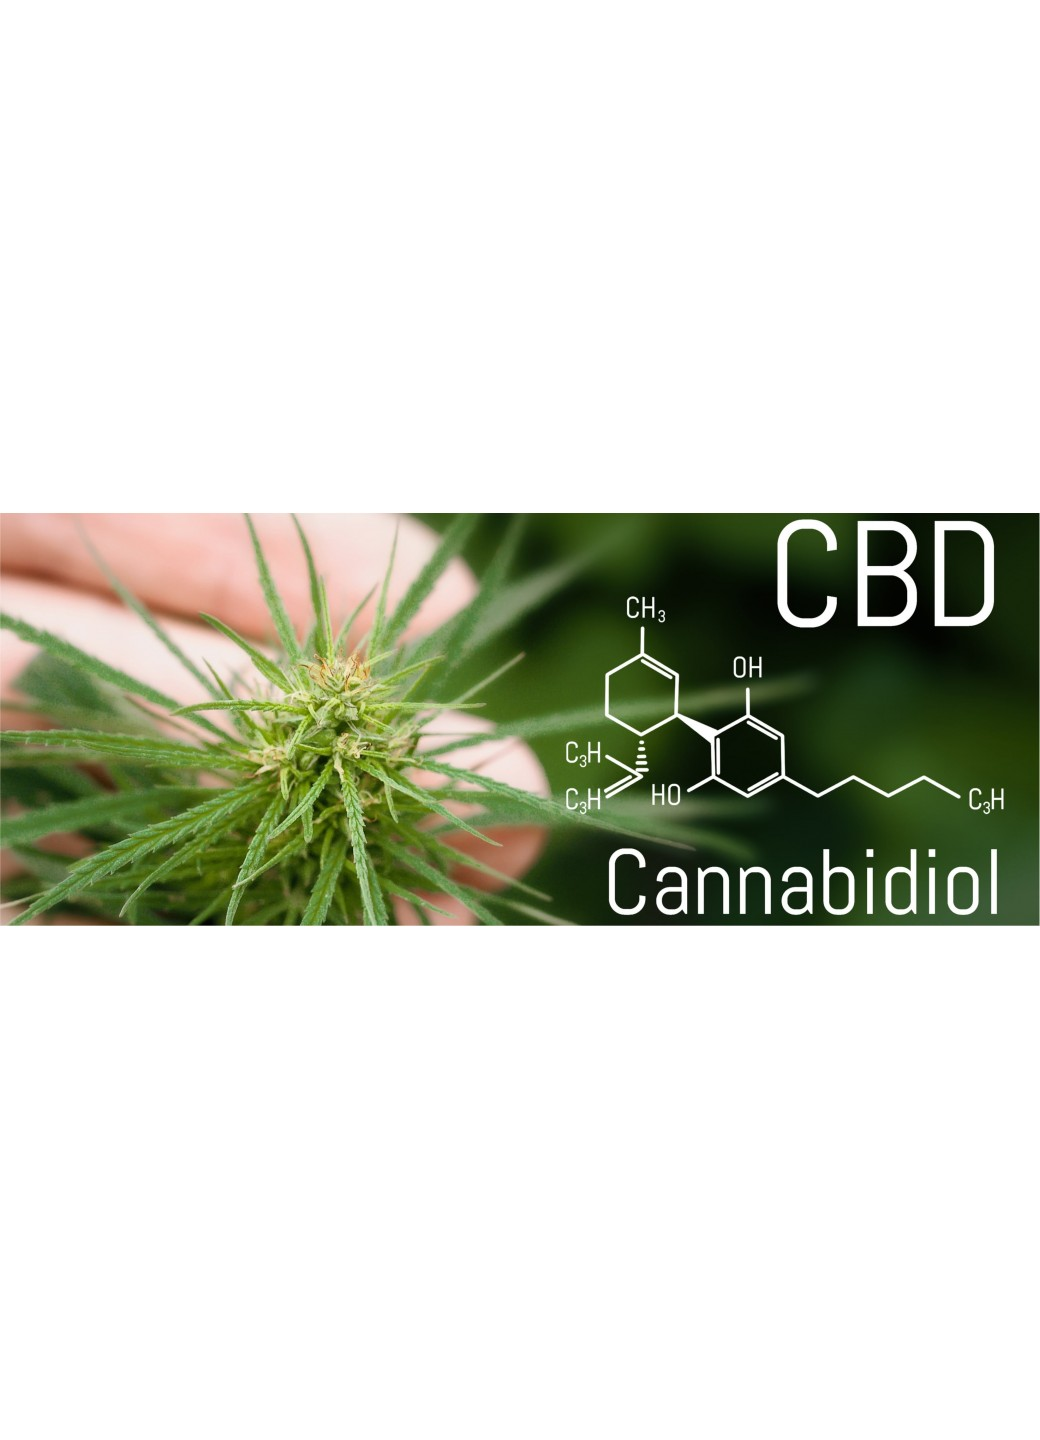 High-quality CBD Oils from the Bullet CBD Company